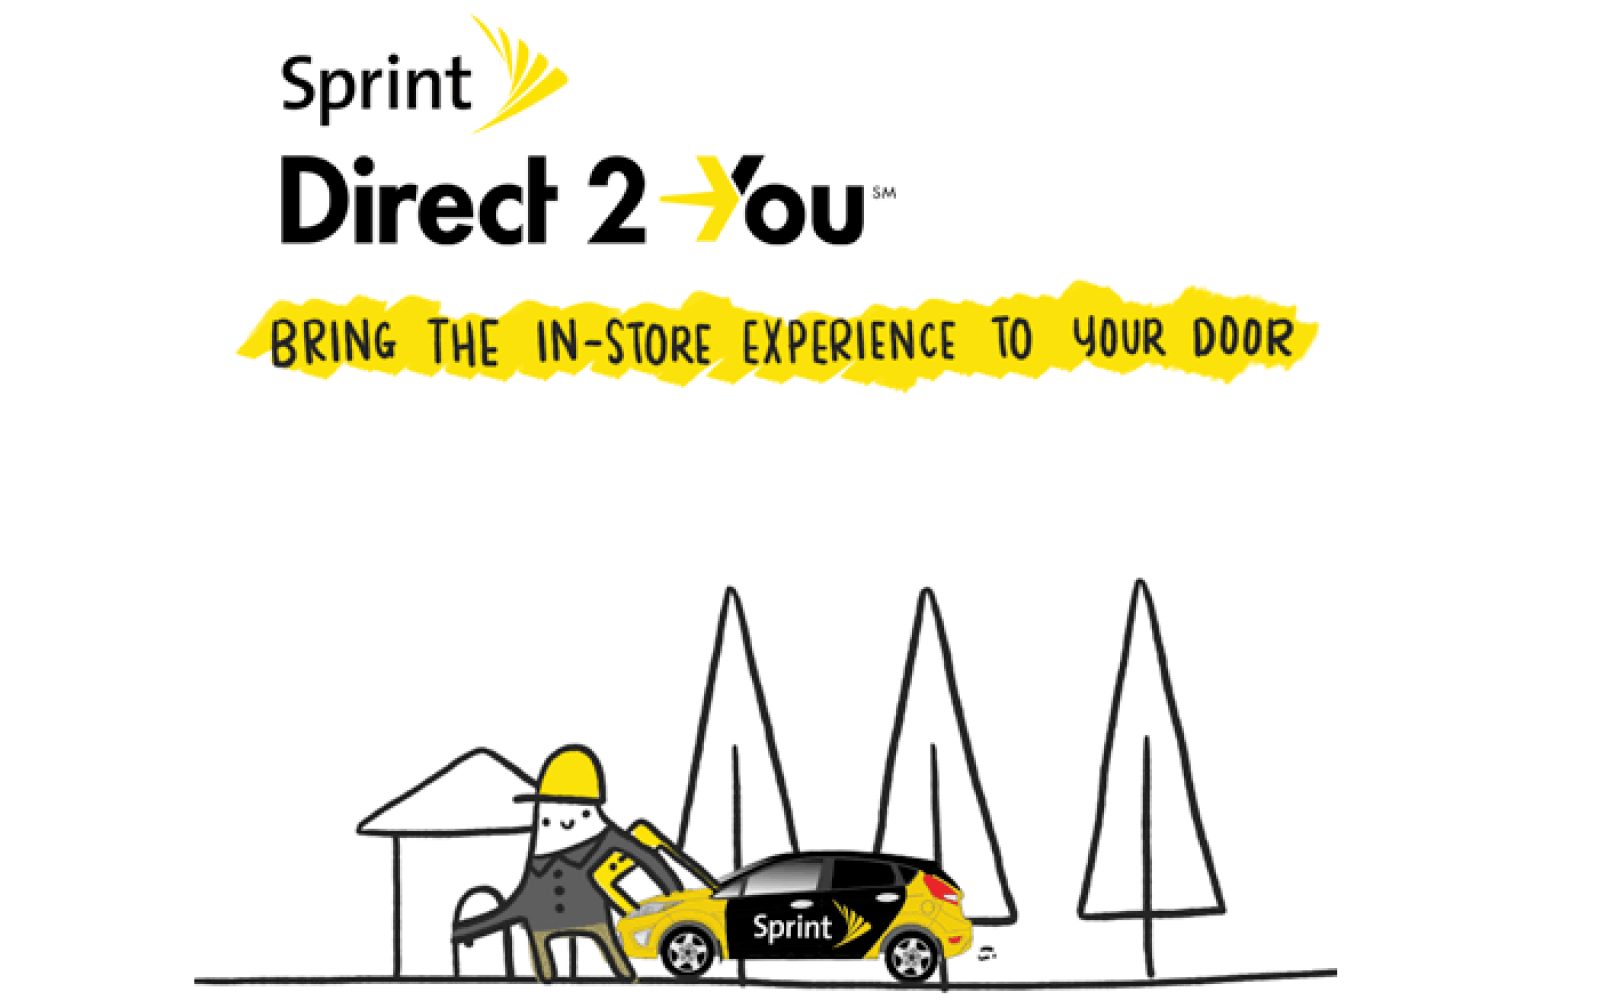 Sprint begins roll-out of home/office iPhone setup service, co-brands RadioShack stores